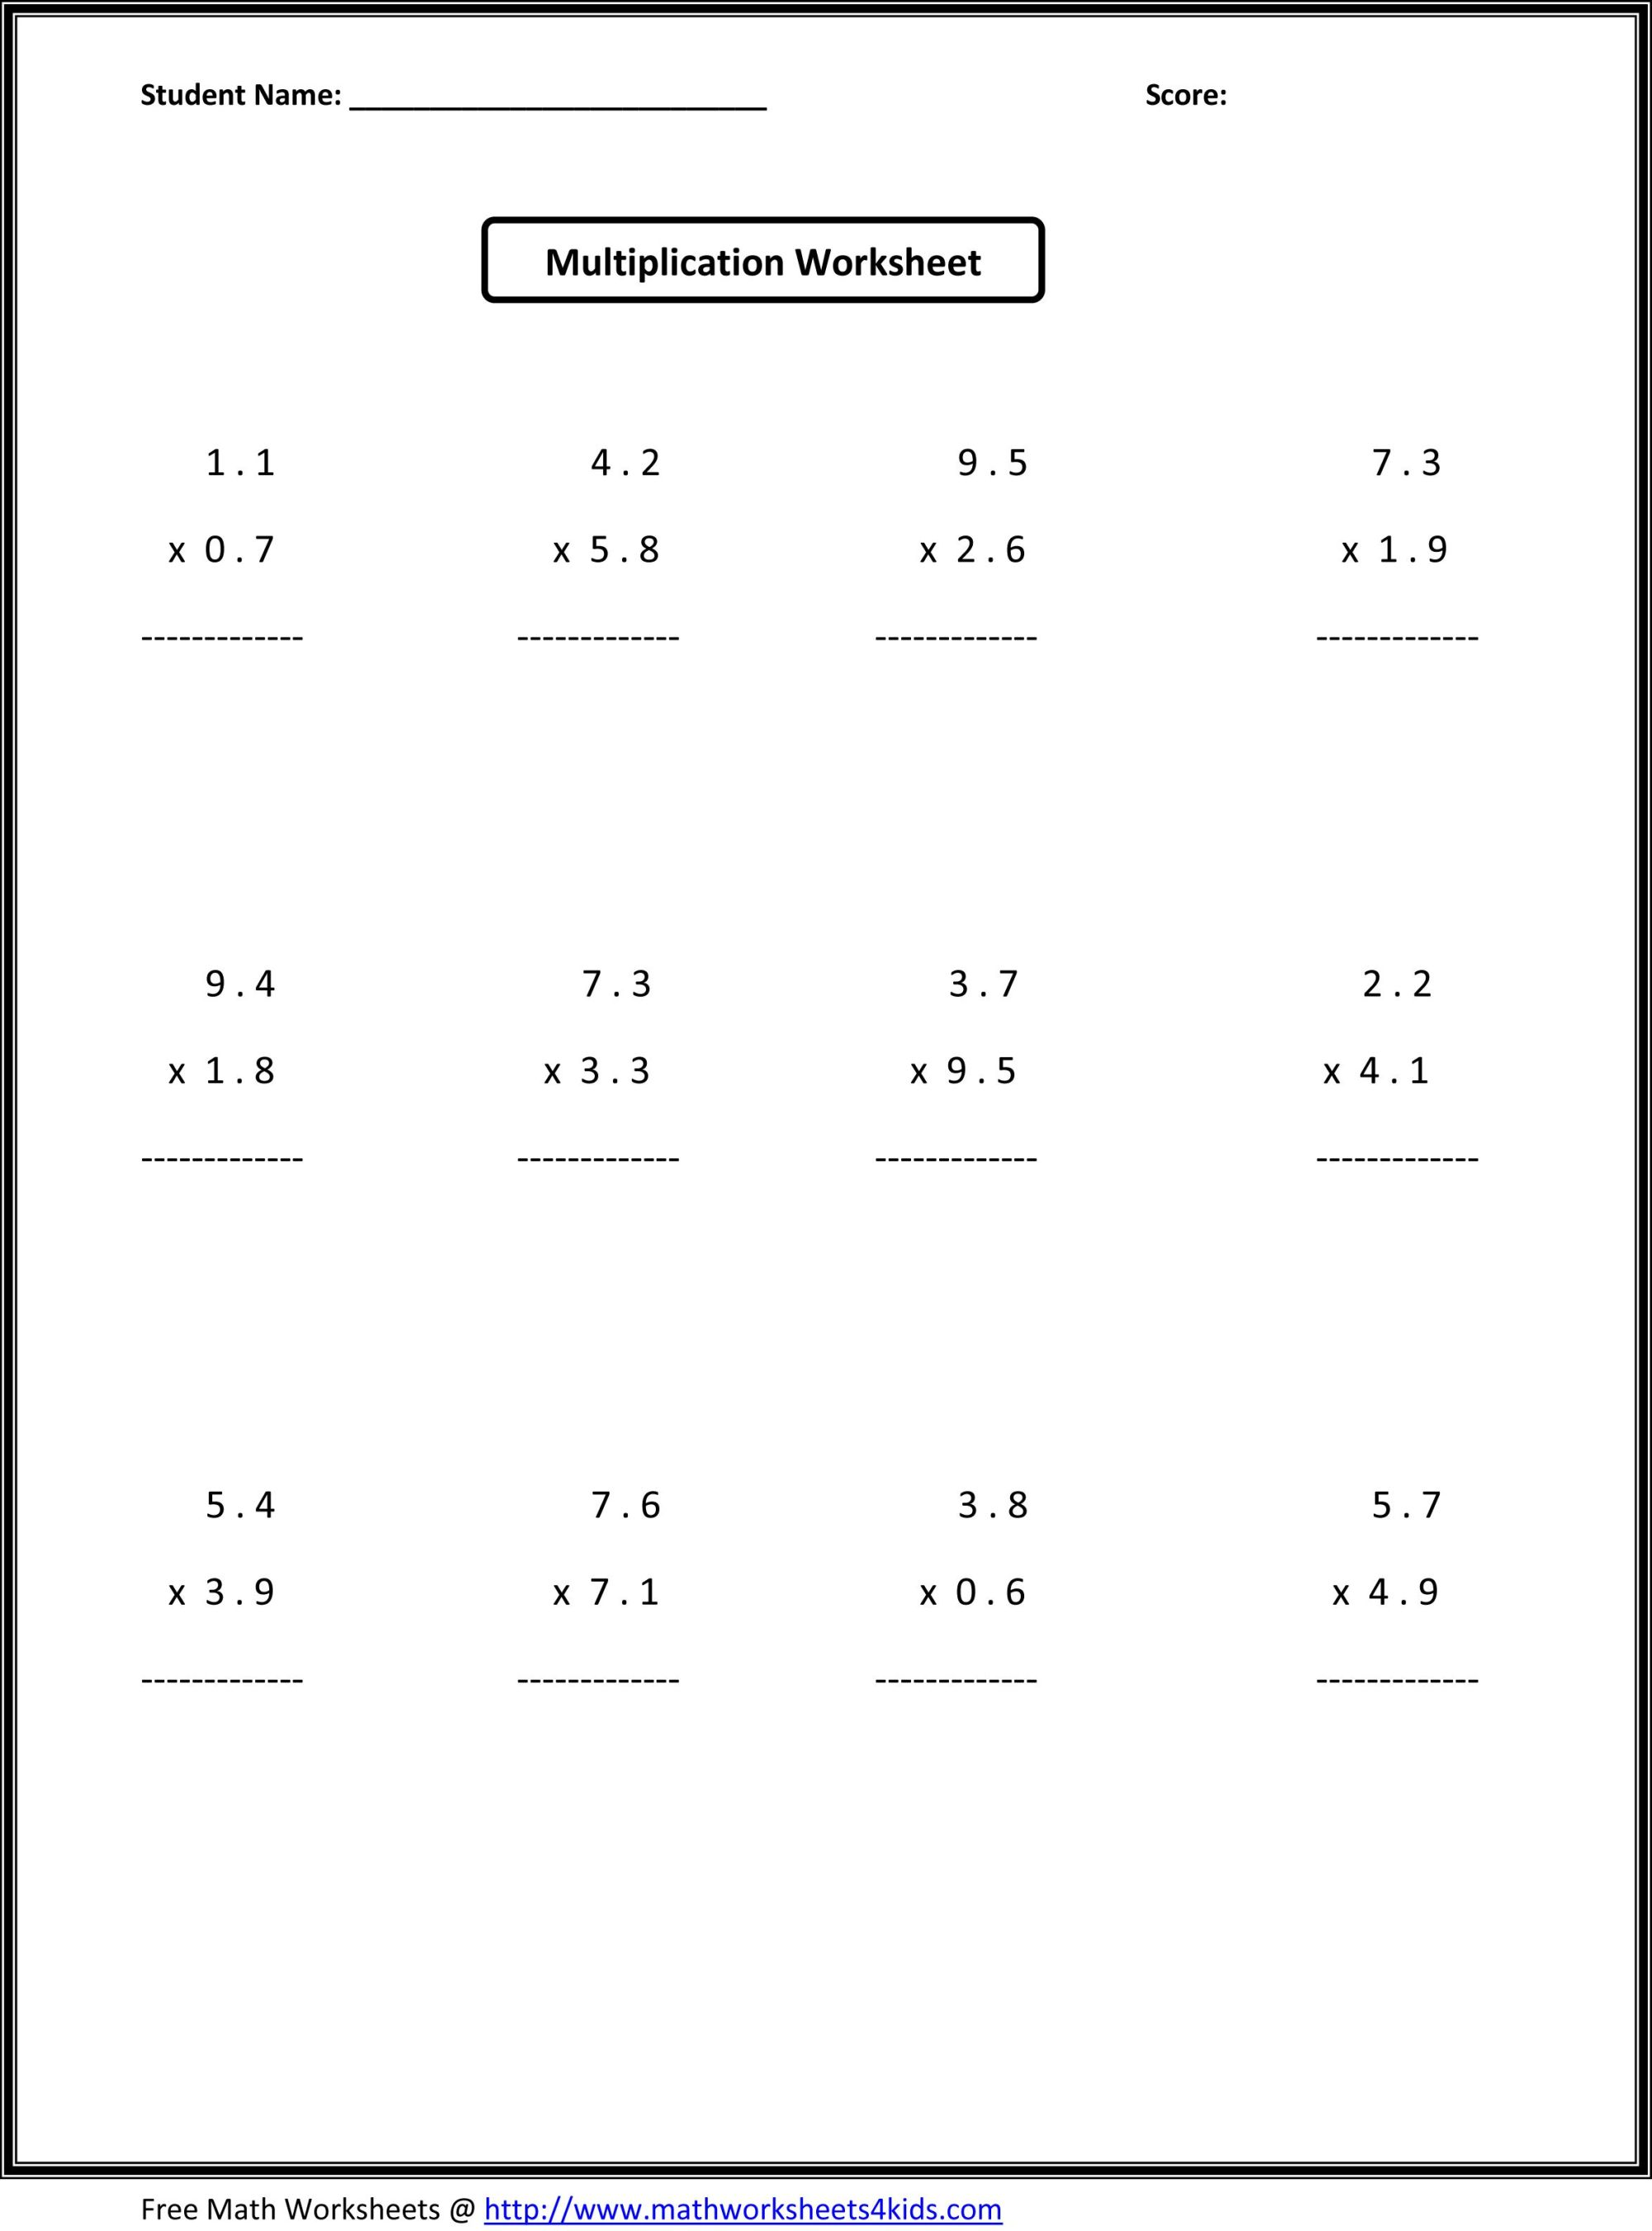 hight resolution of 24 Best 7th Grade Math Worksheets images on Worksheets Ideas